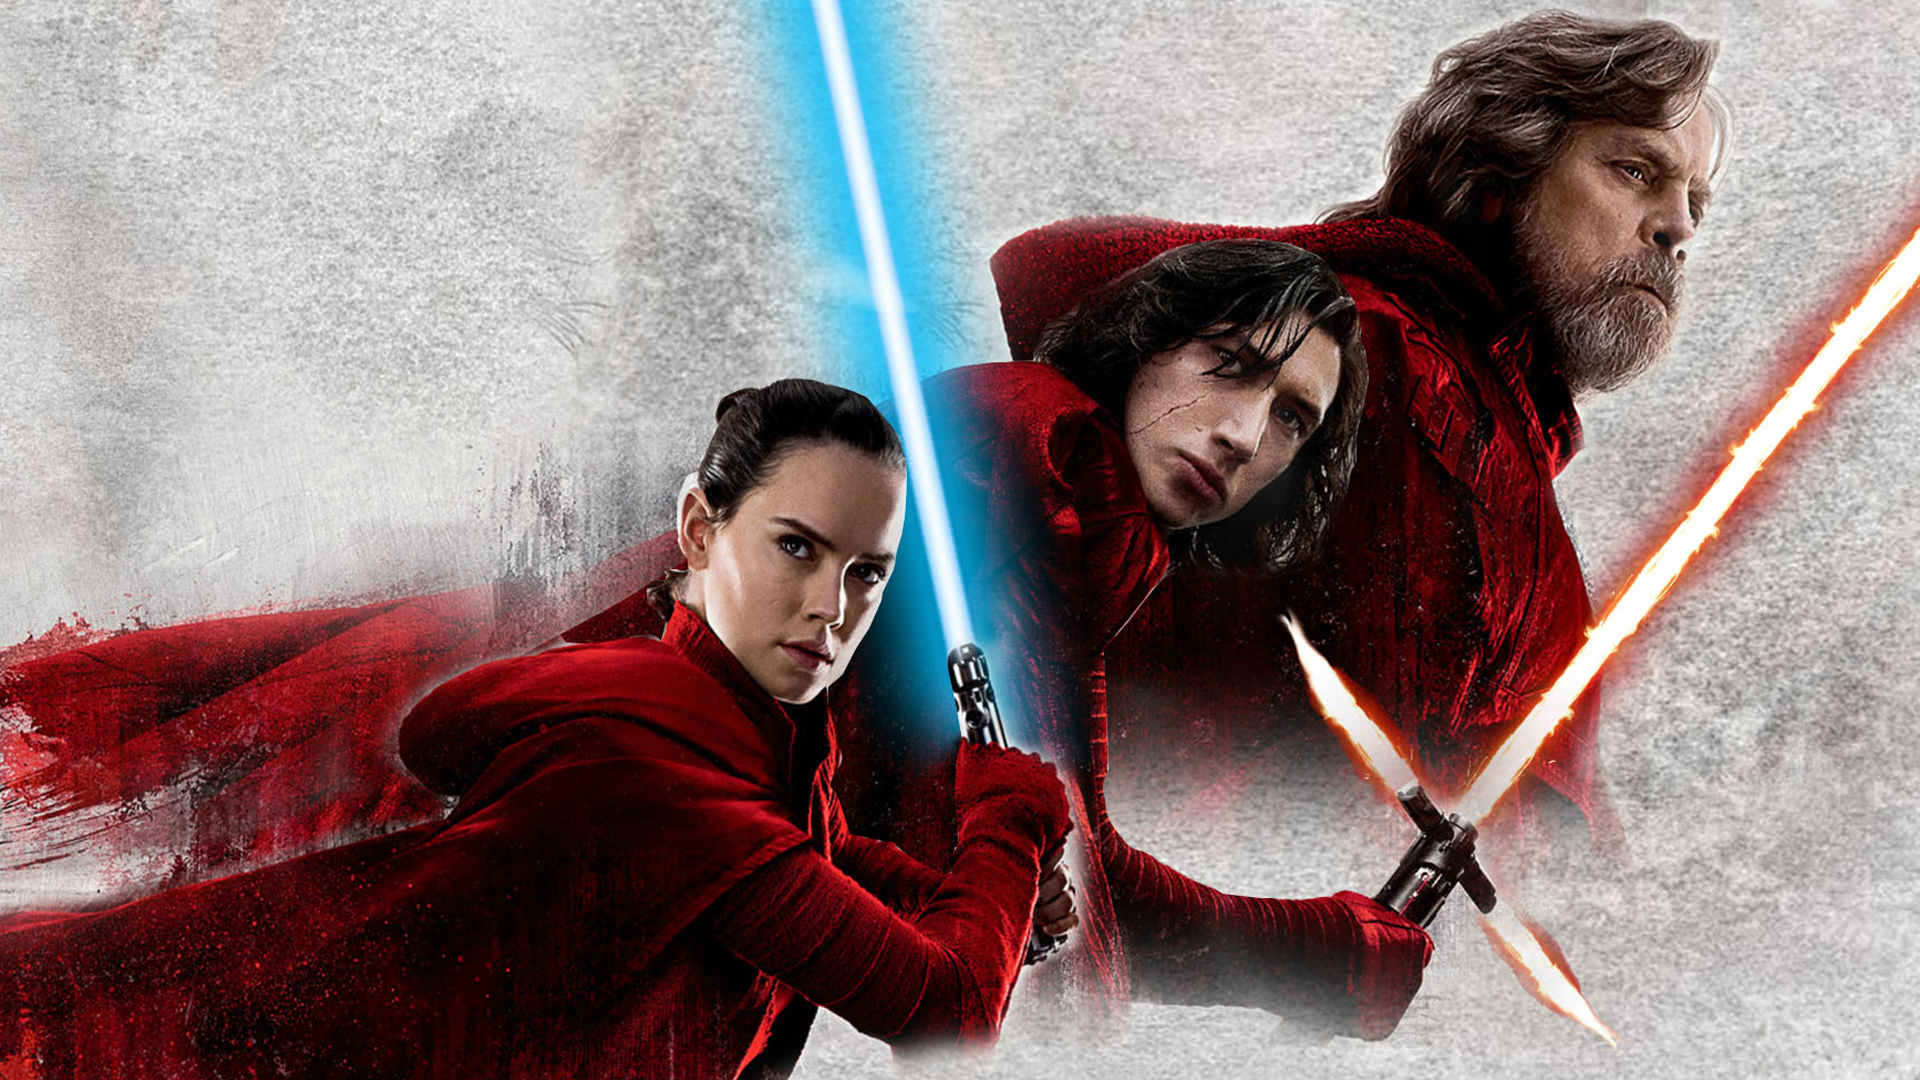 Star Wars: The Last Jedi Strikes Back Again